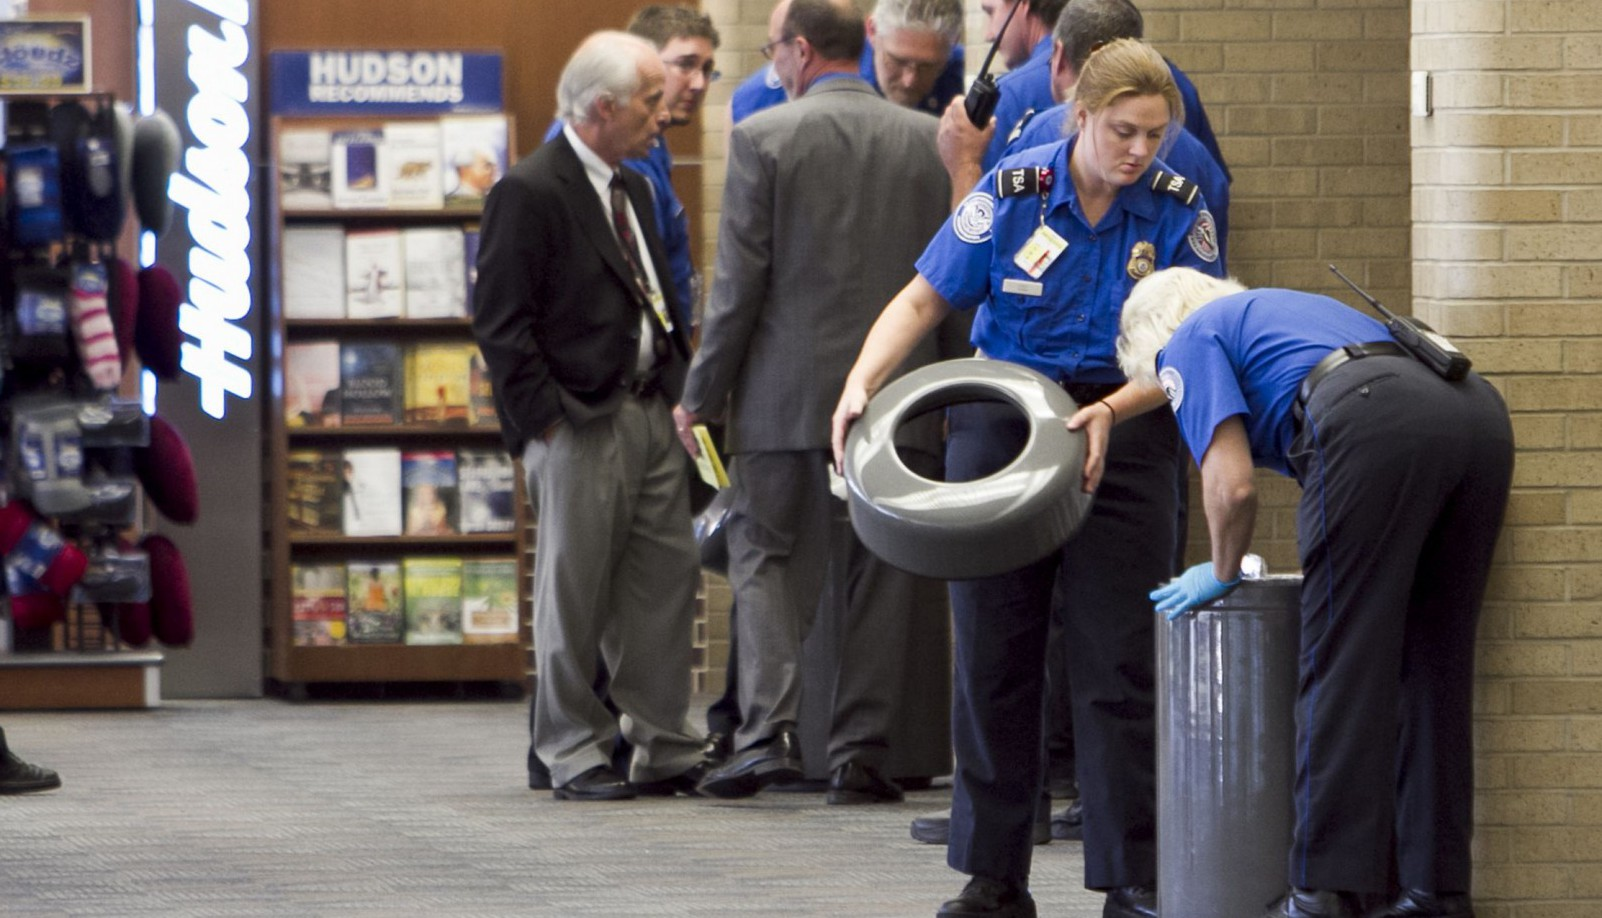 TSA agents at Omaha's Eppley Airfield search trash cans Wednesday, Aug. 3, 2011 in Omaha, Neb.. One of the terminals was evacuated and shut down when a suspicious item was spotted in a piece of luggage. The federal Transportation Security Agency says it called for the evacuation of the airport's north terminal around noon after x-ray screening workers saw an item in a carry-on bag. Officials have not said what the item was. (AP Photo/Nati Harnik)